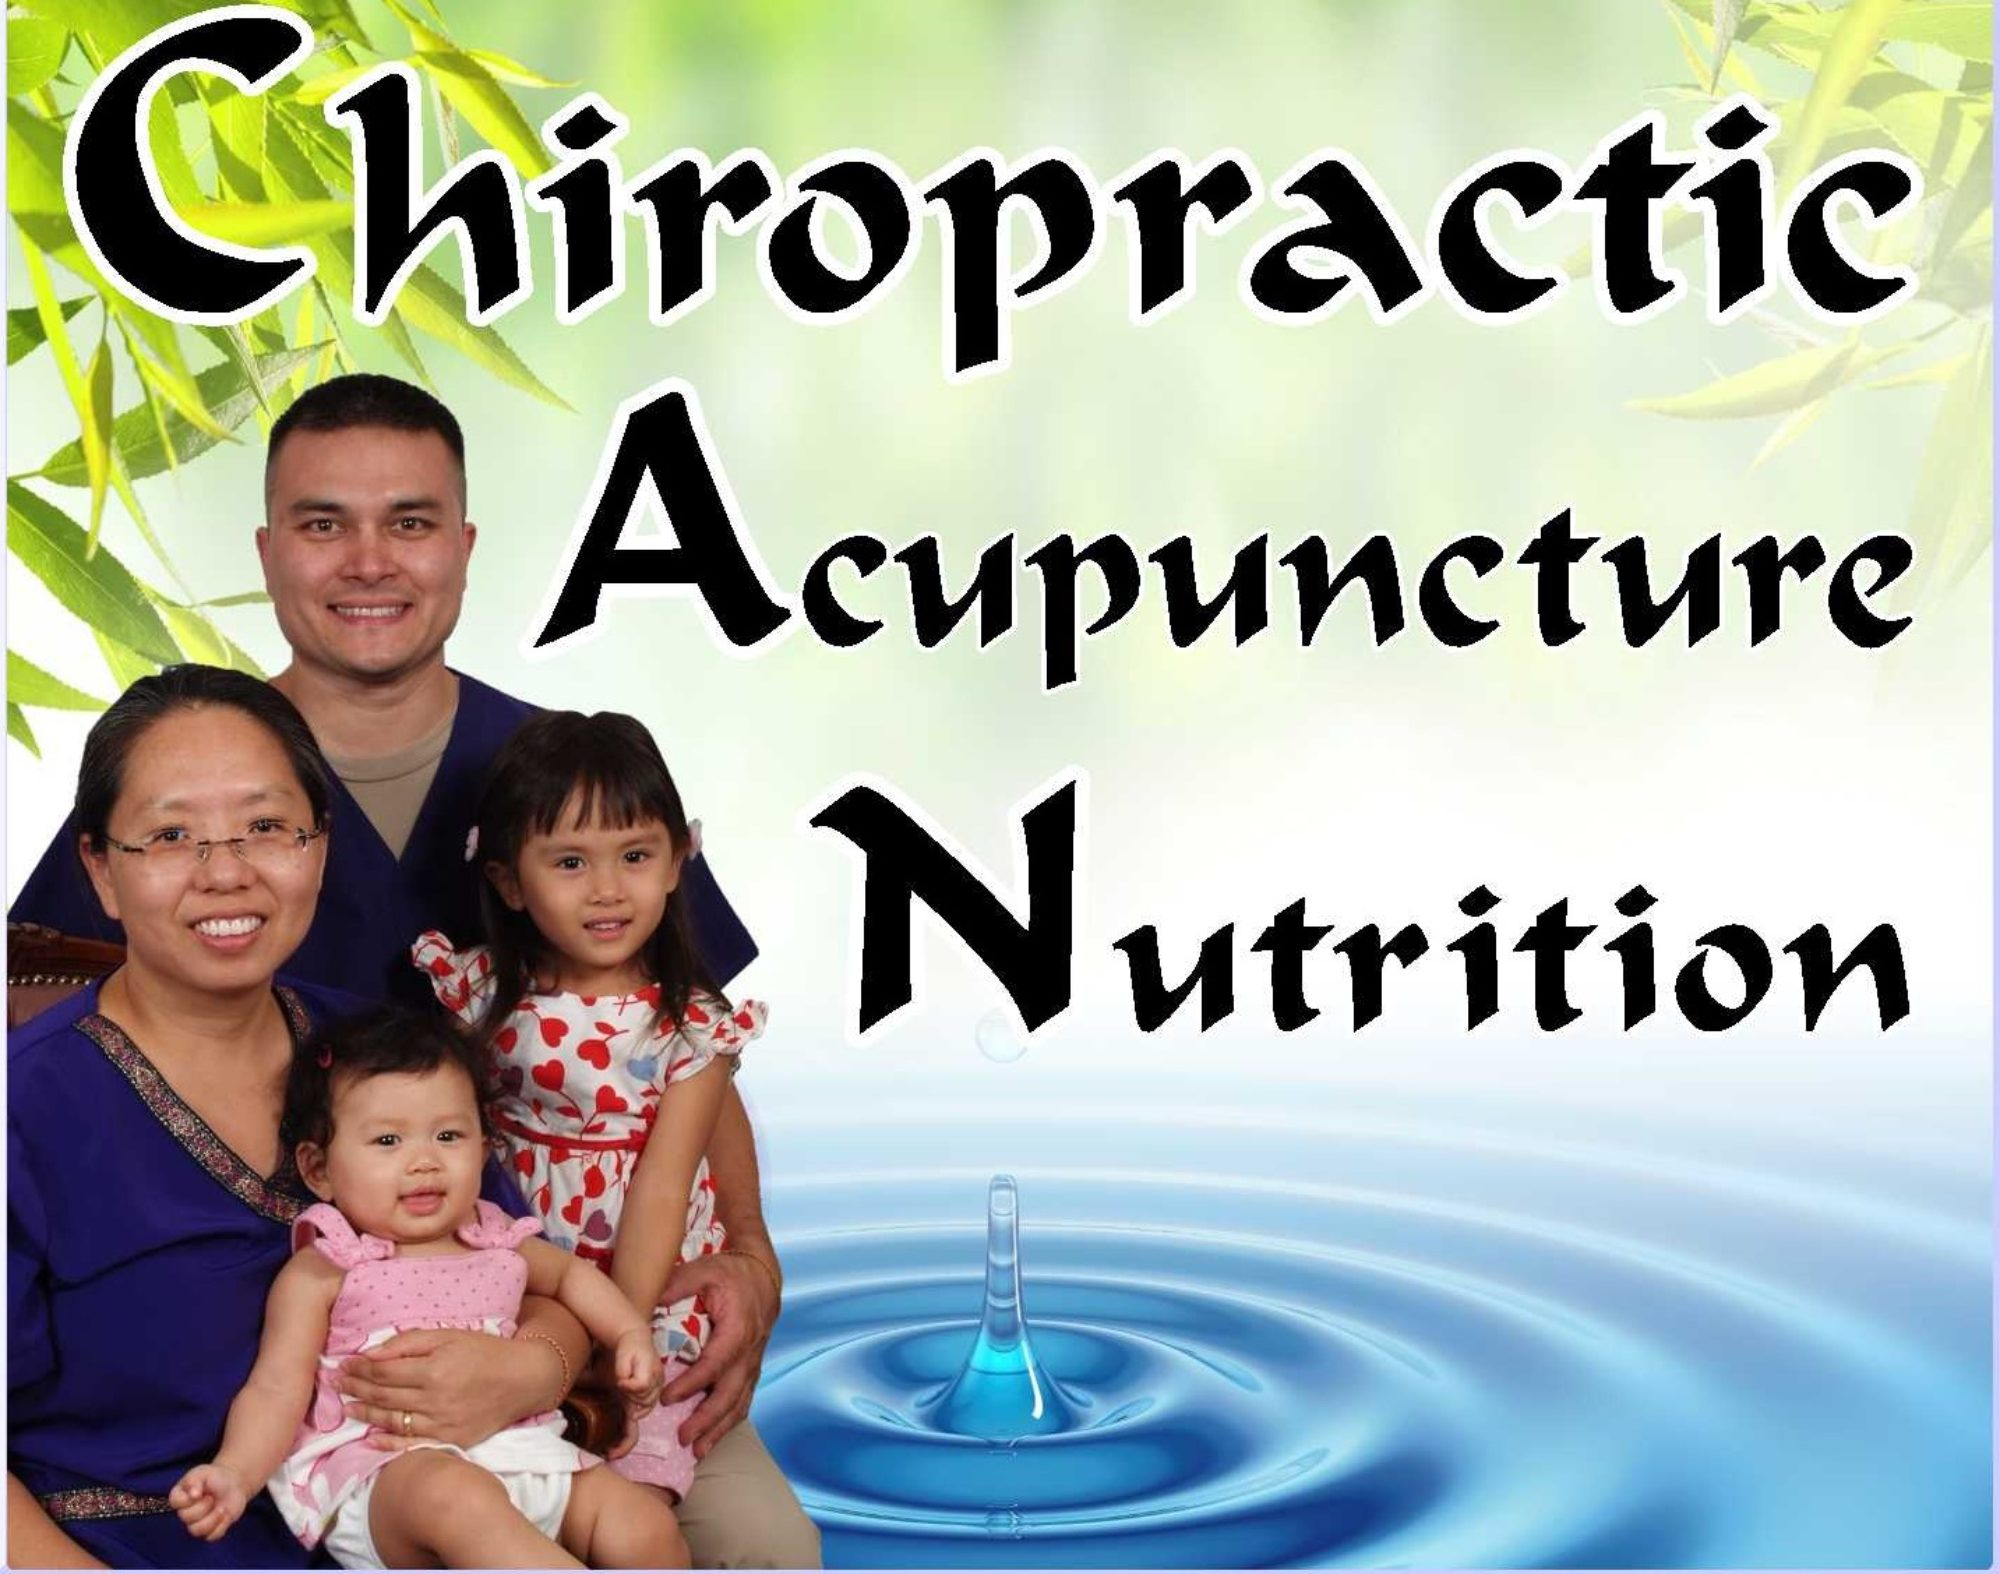 Hysell Chiropractic & Acupuncture